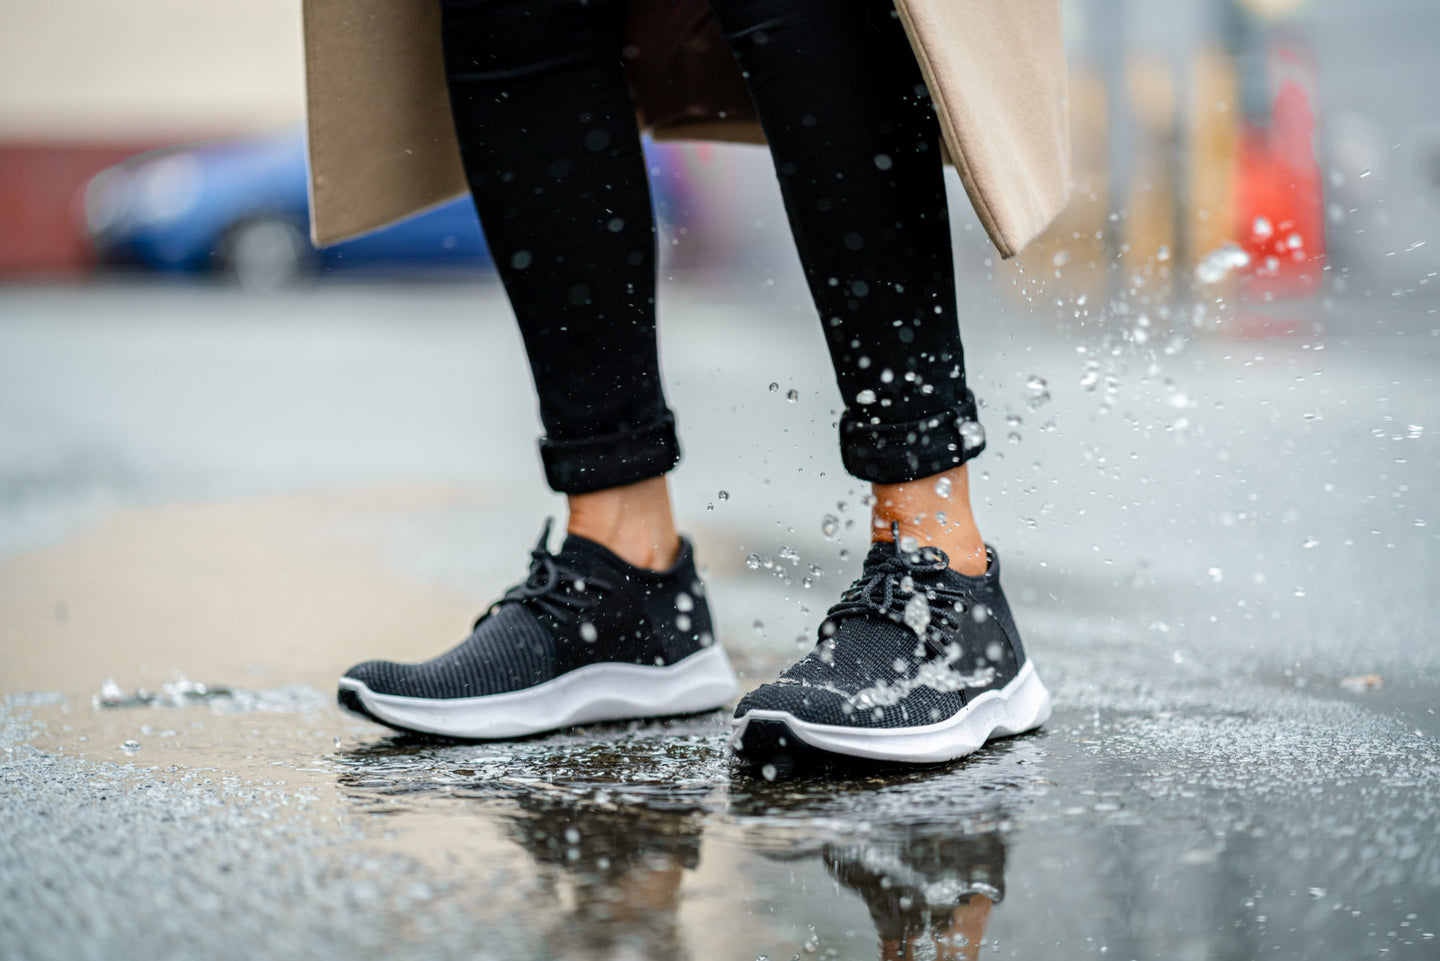 Meet 100% waterproof knit